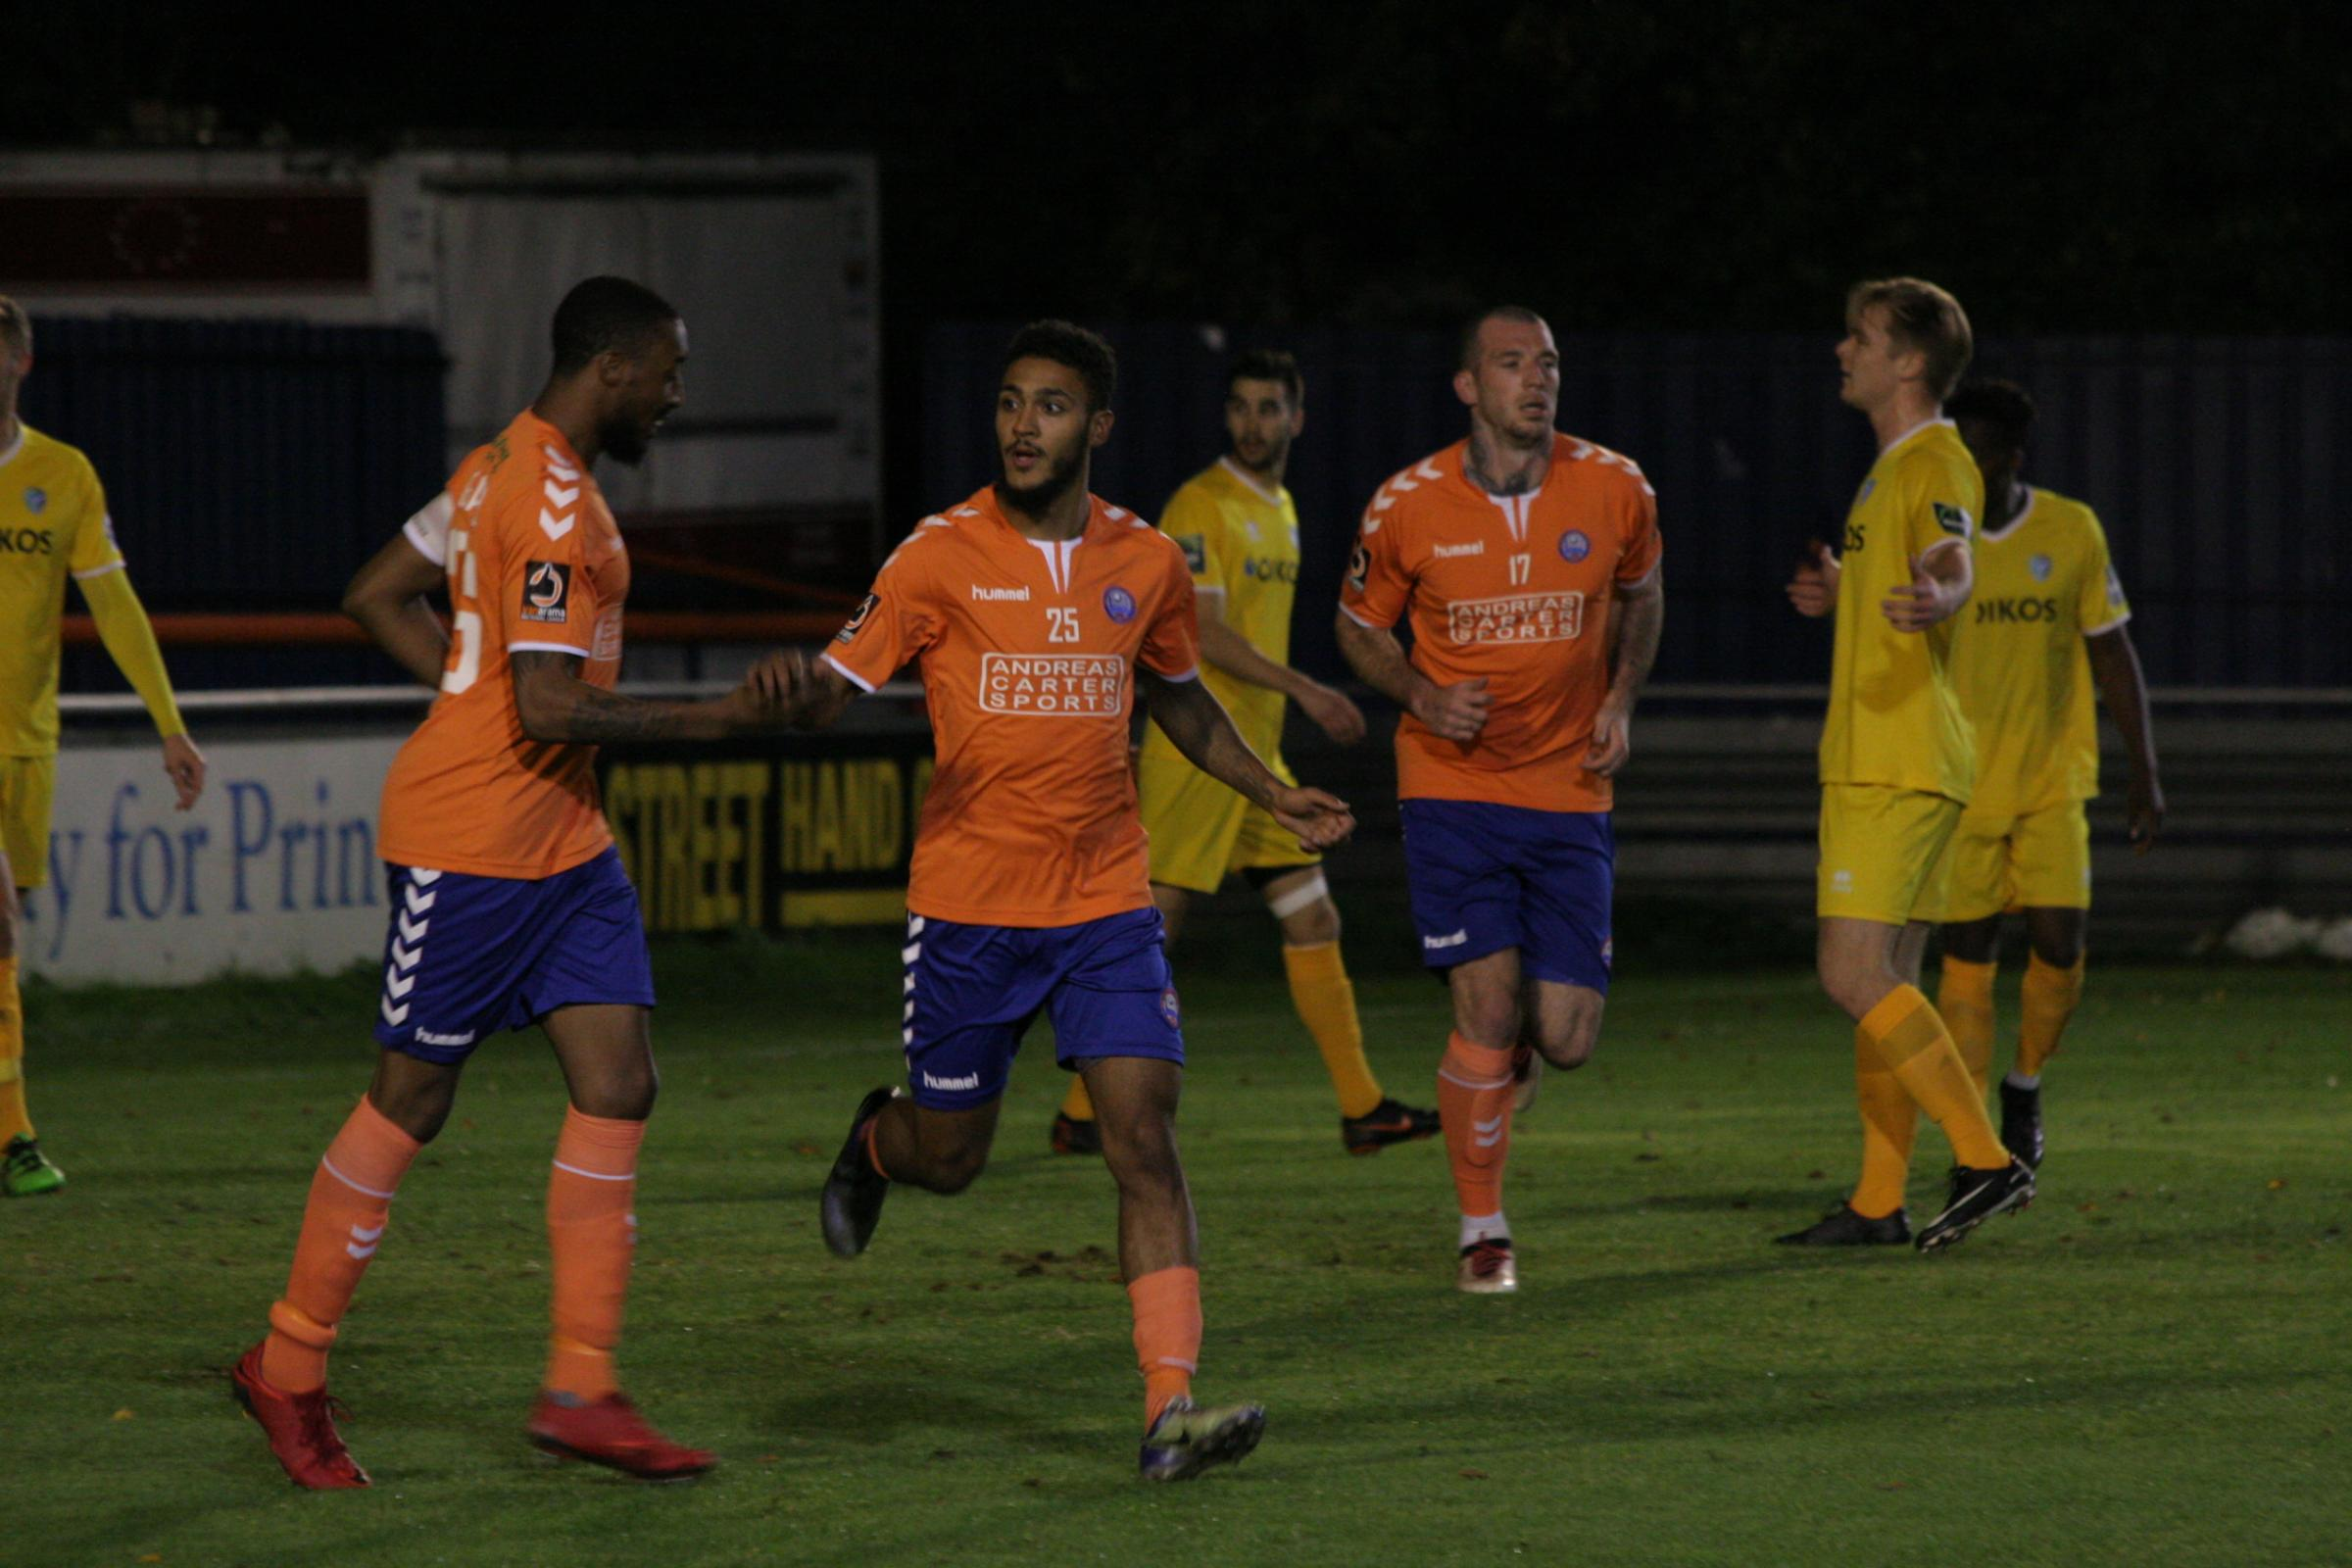 Reece Grant scored a first-half hat-trick for Braintree. Picture: Jon Weaver